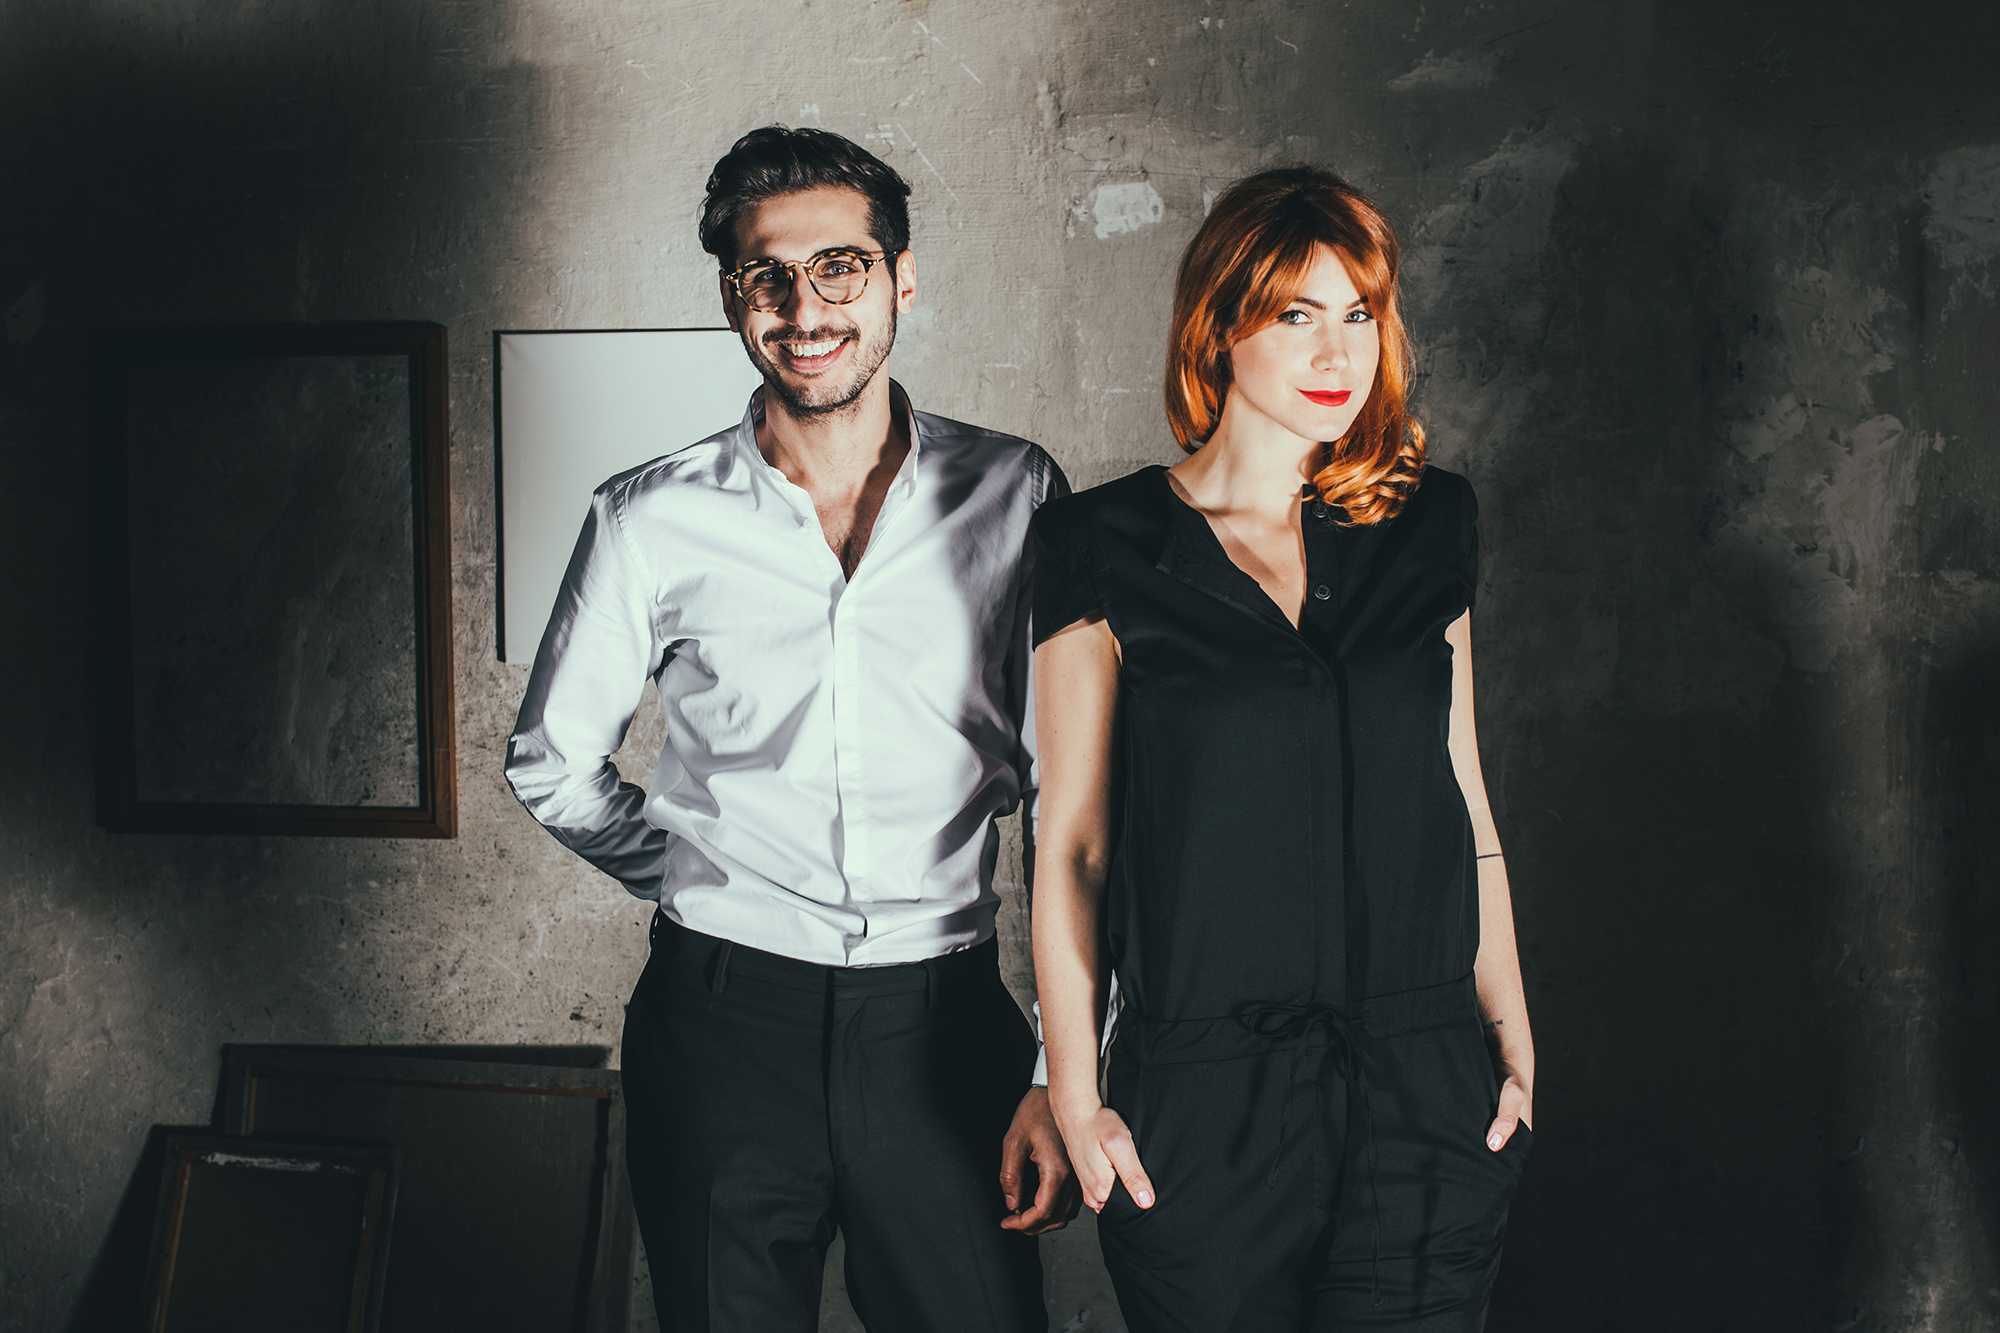 Mathias Assefi and Cecilia Capri - founders of WE ARE FLOWERGIRLS (Image by Lupi Spuma)